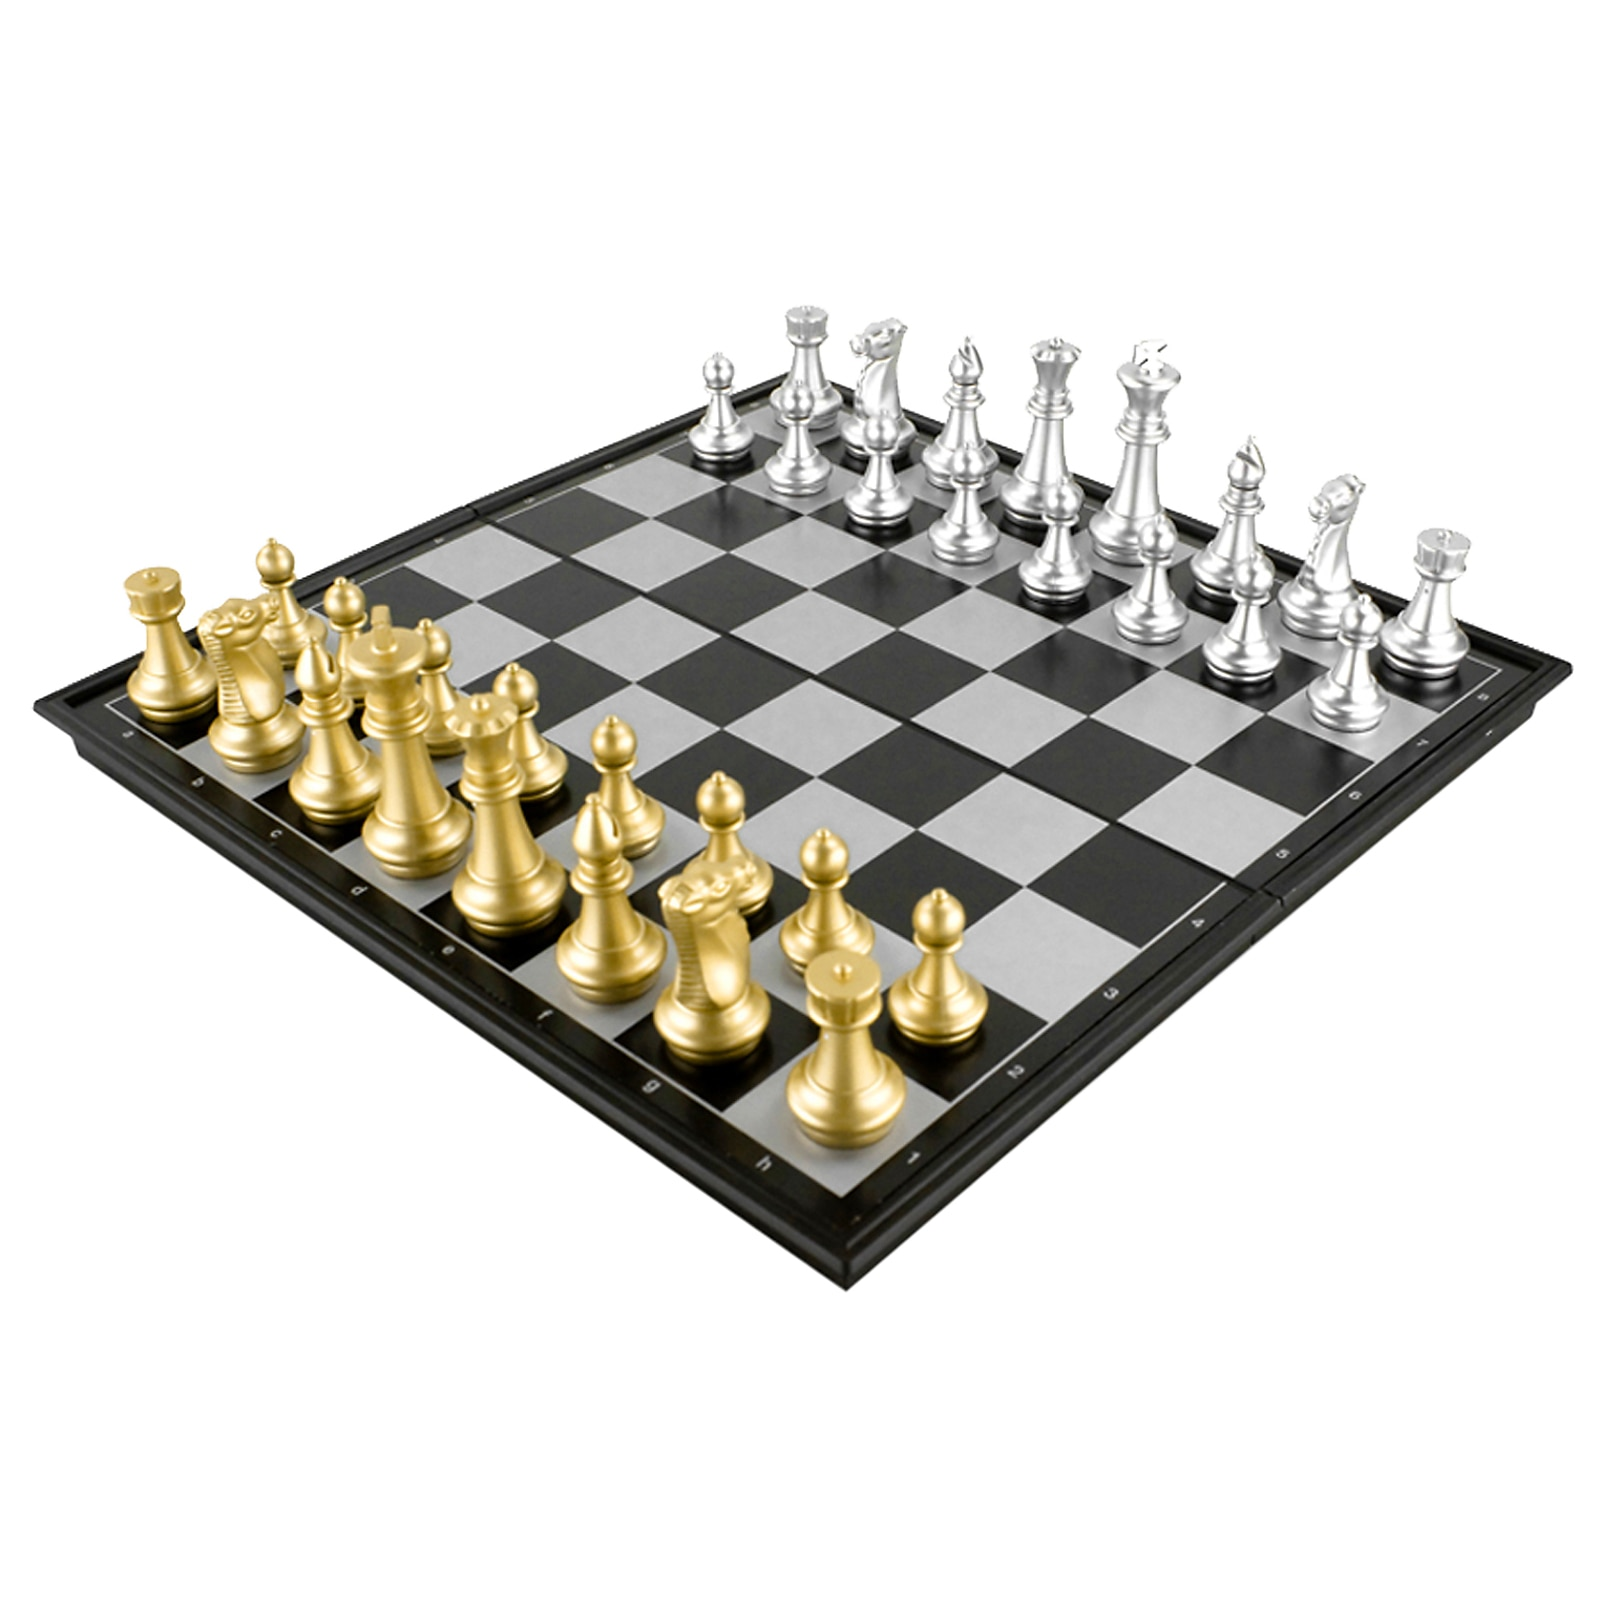 Фото - Game Chess Set Folding Plastic Chessboard Travel Lightweight Board Educational Toys Parlor Game Outdoor Parent-Child Toy 2021 novelty kids bean bag toss game toys outdoor dart board game game toy set fun parent child interaction educational game